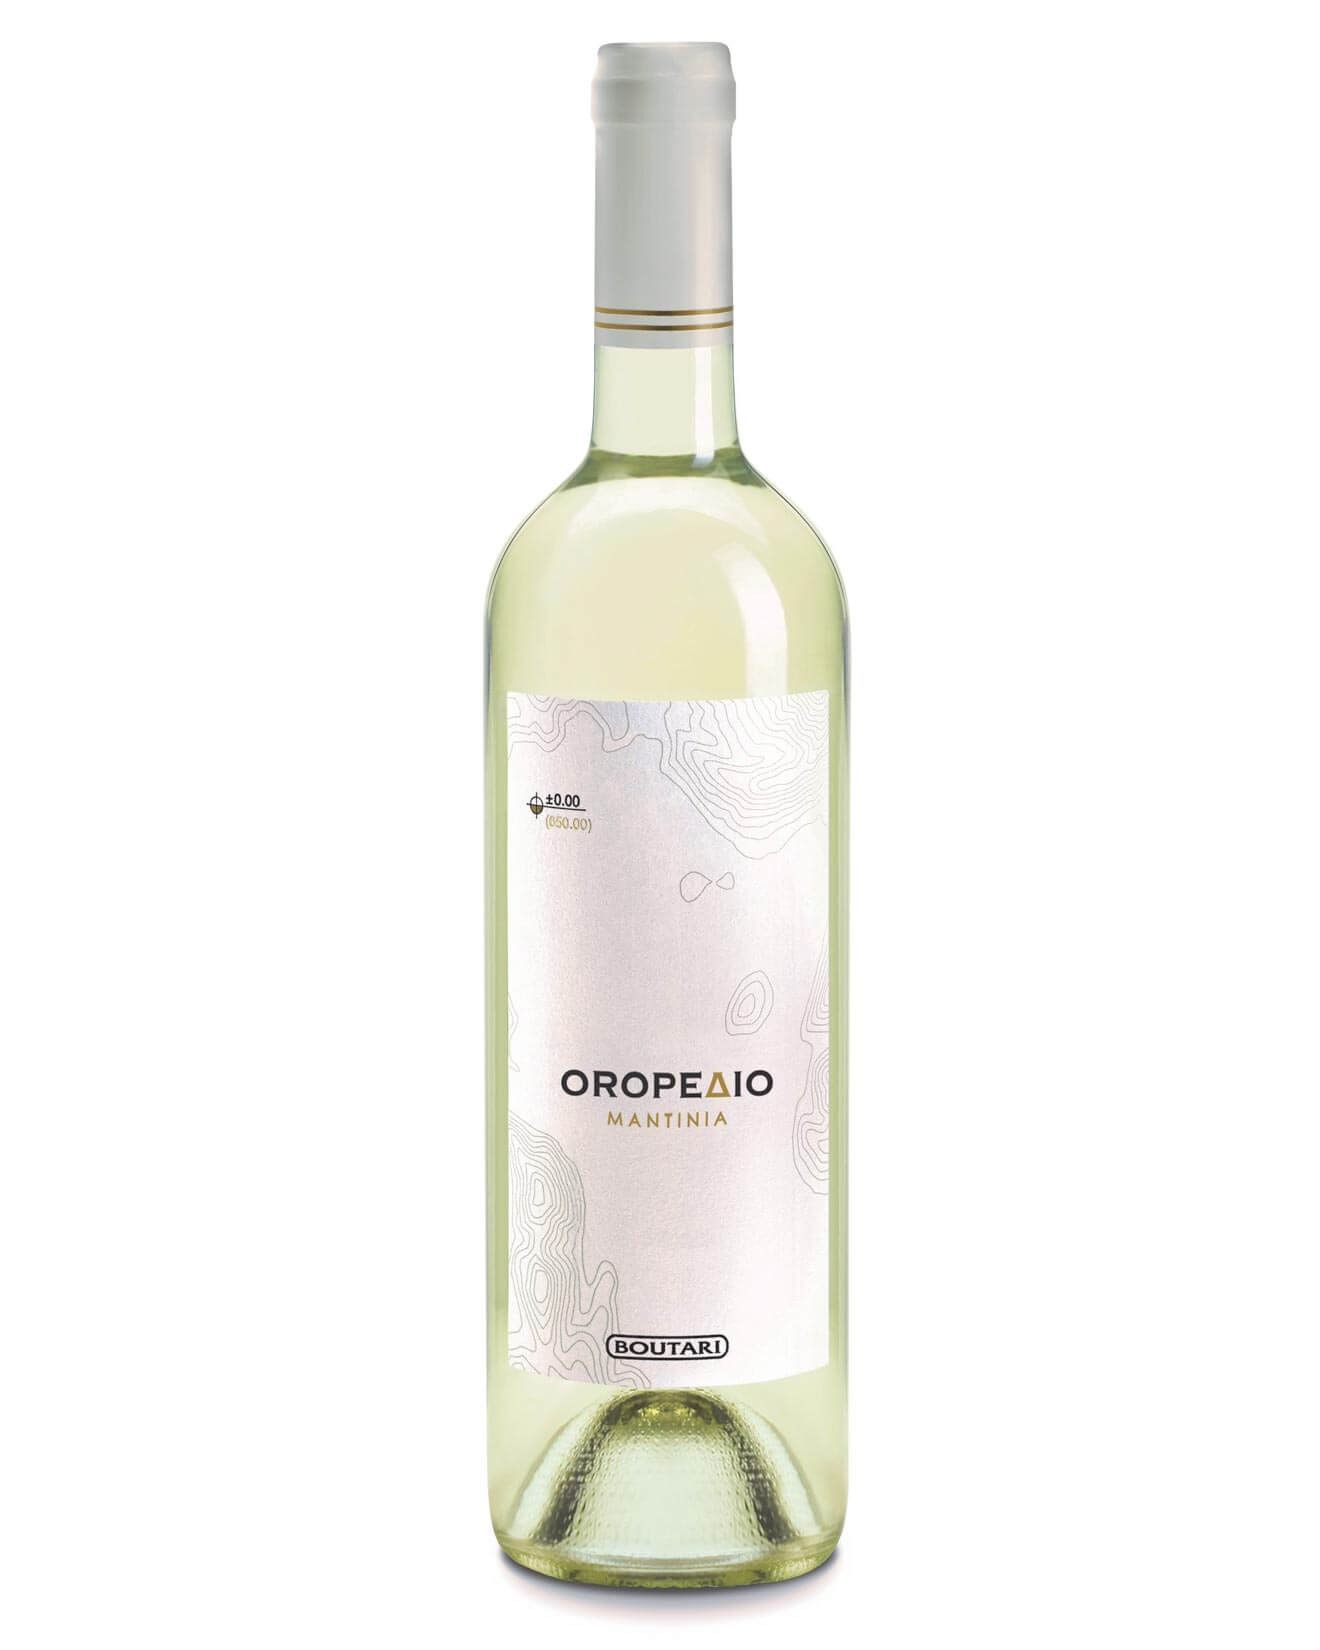 Boutari Oropedio 2017, bottle on white